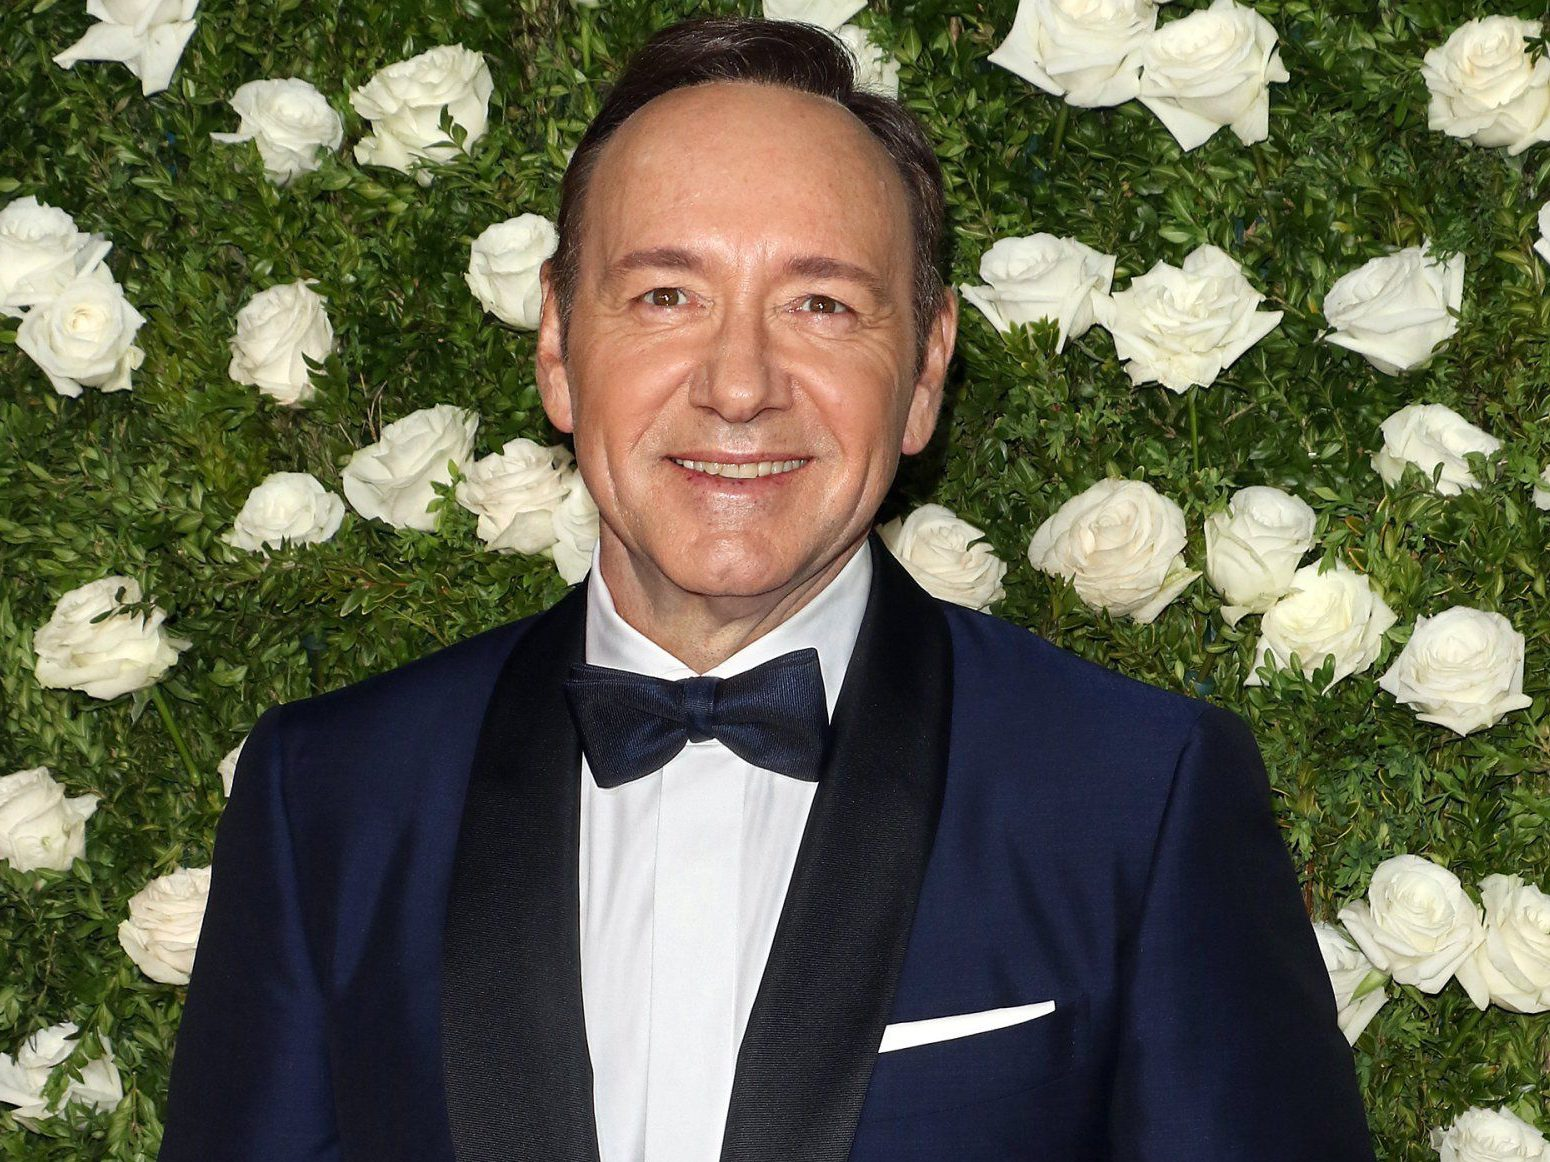 NEW YORK, NY - JUNE 11: Actor Kevin Spacey attends the 71st Annual Tony Awards at Radio City Music Hall on June 11, 2017 in New York City. (Photo by Jim Spellman/WireImage)